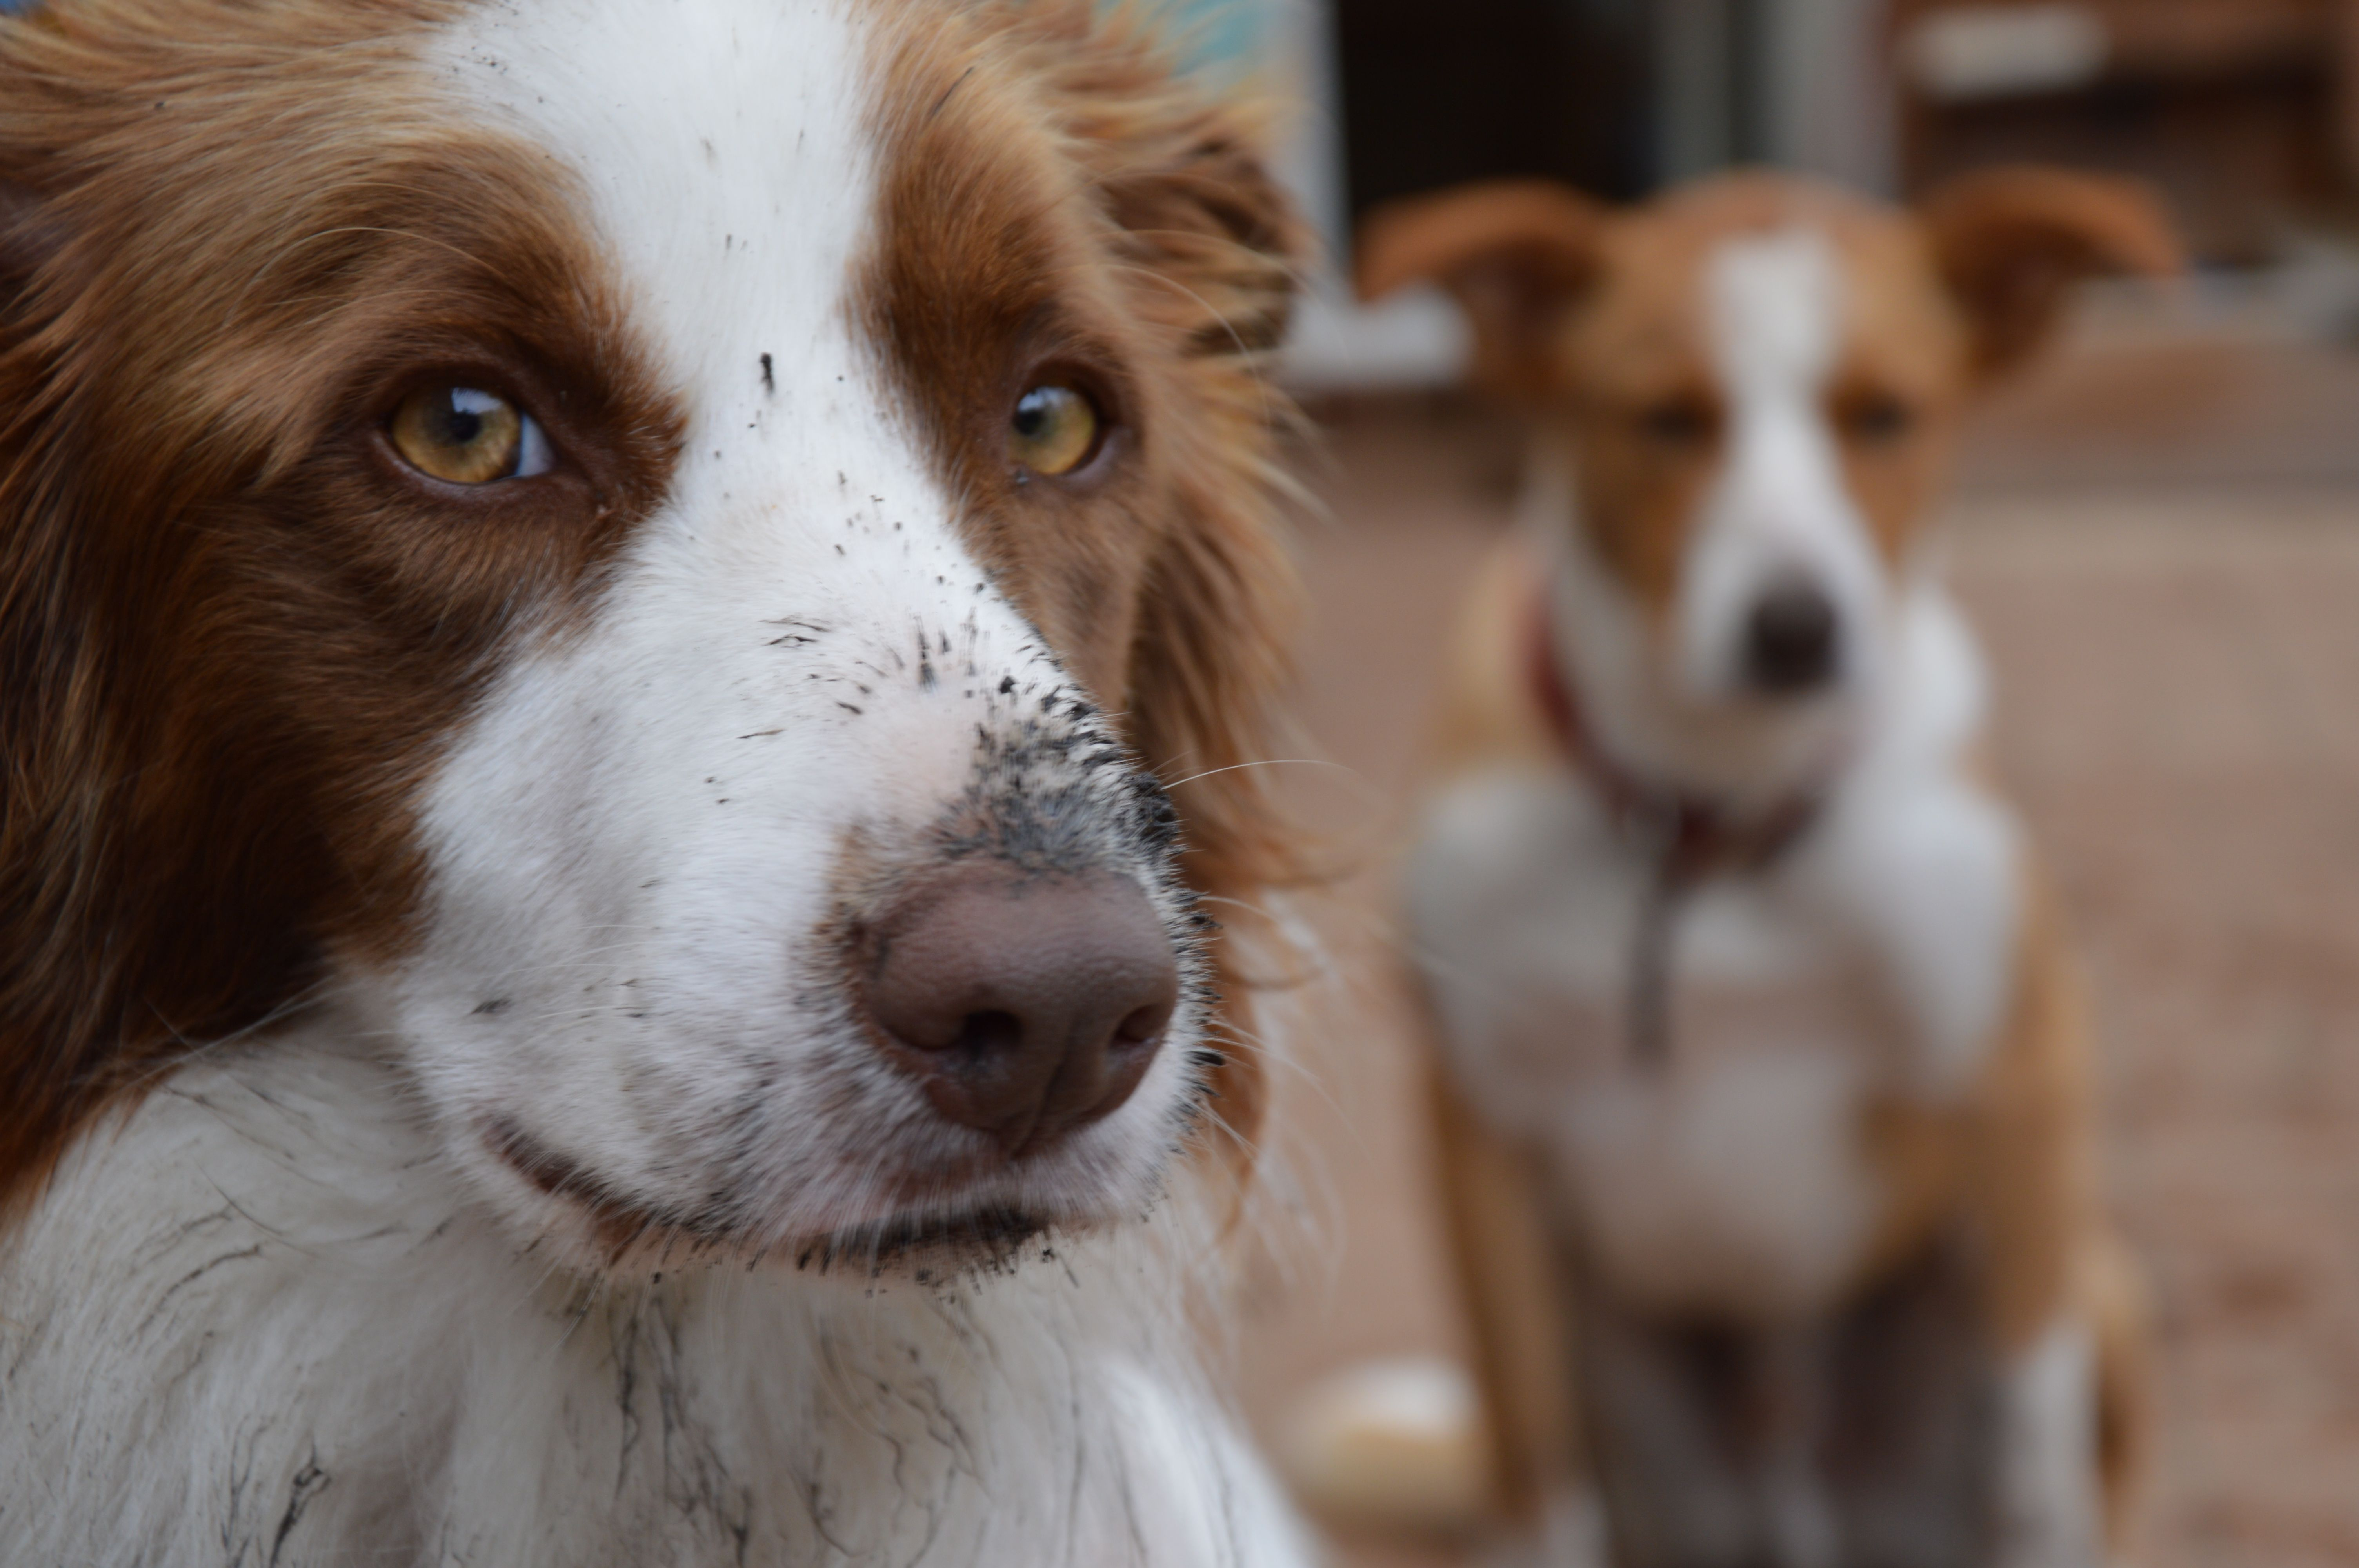 My Border Collies after digging holes. Border collie